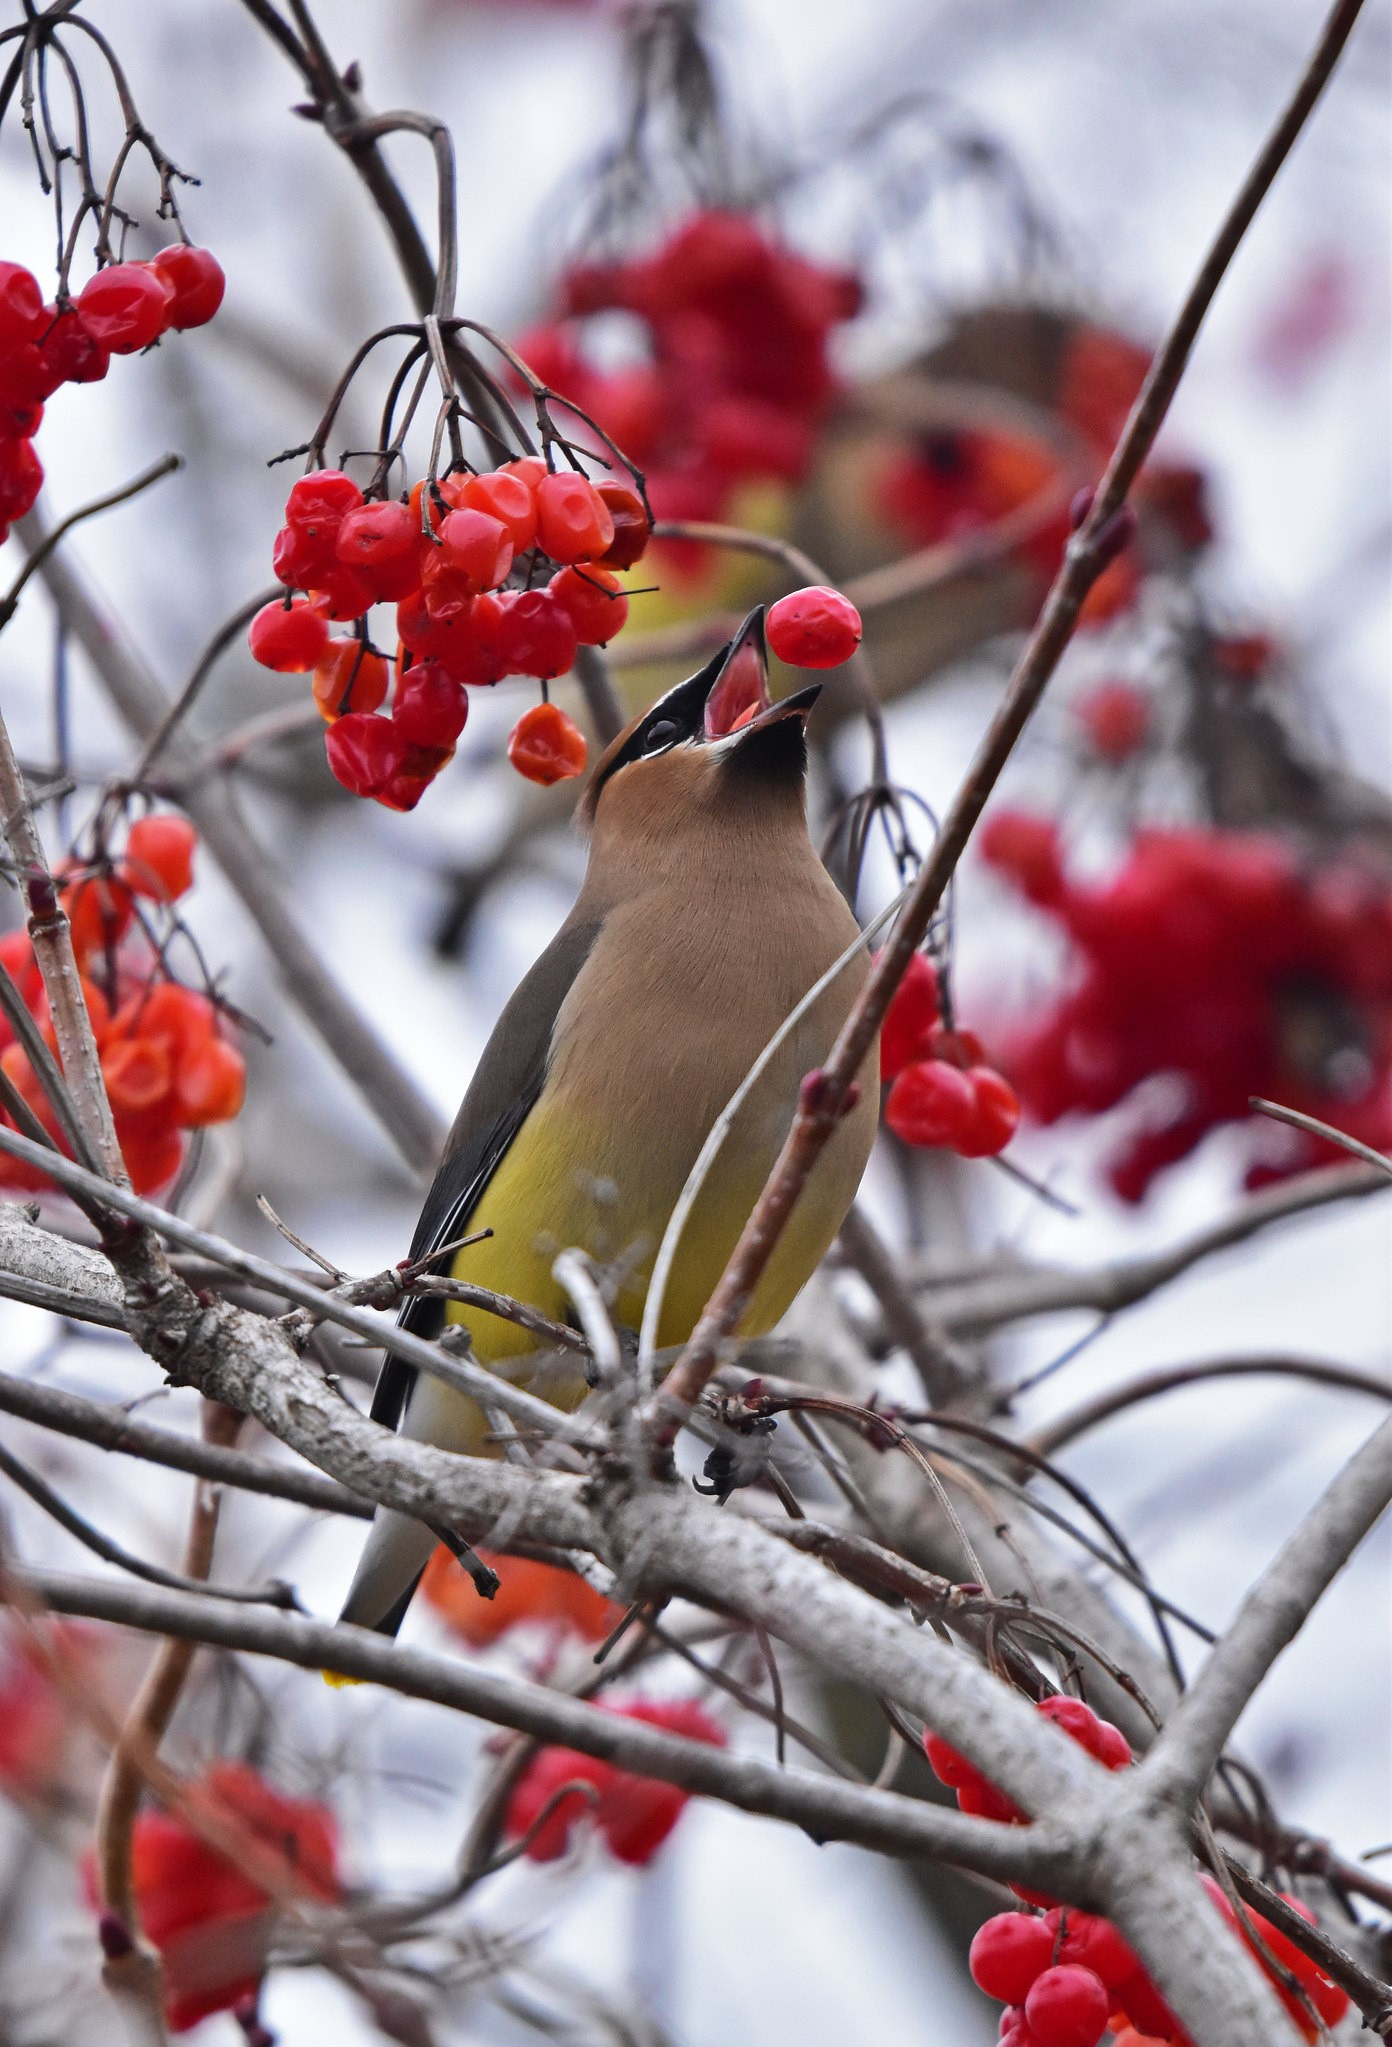 Cullen Anderson's first-place photo of the Cedar Waxwing